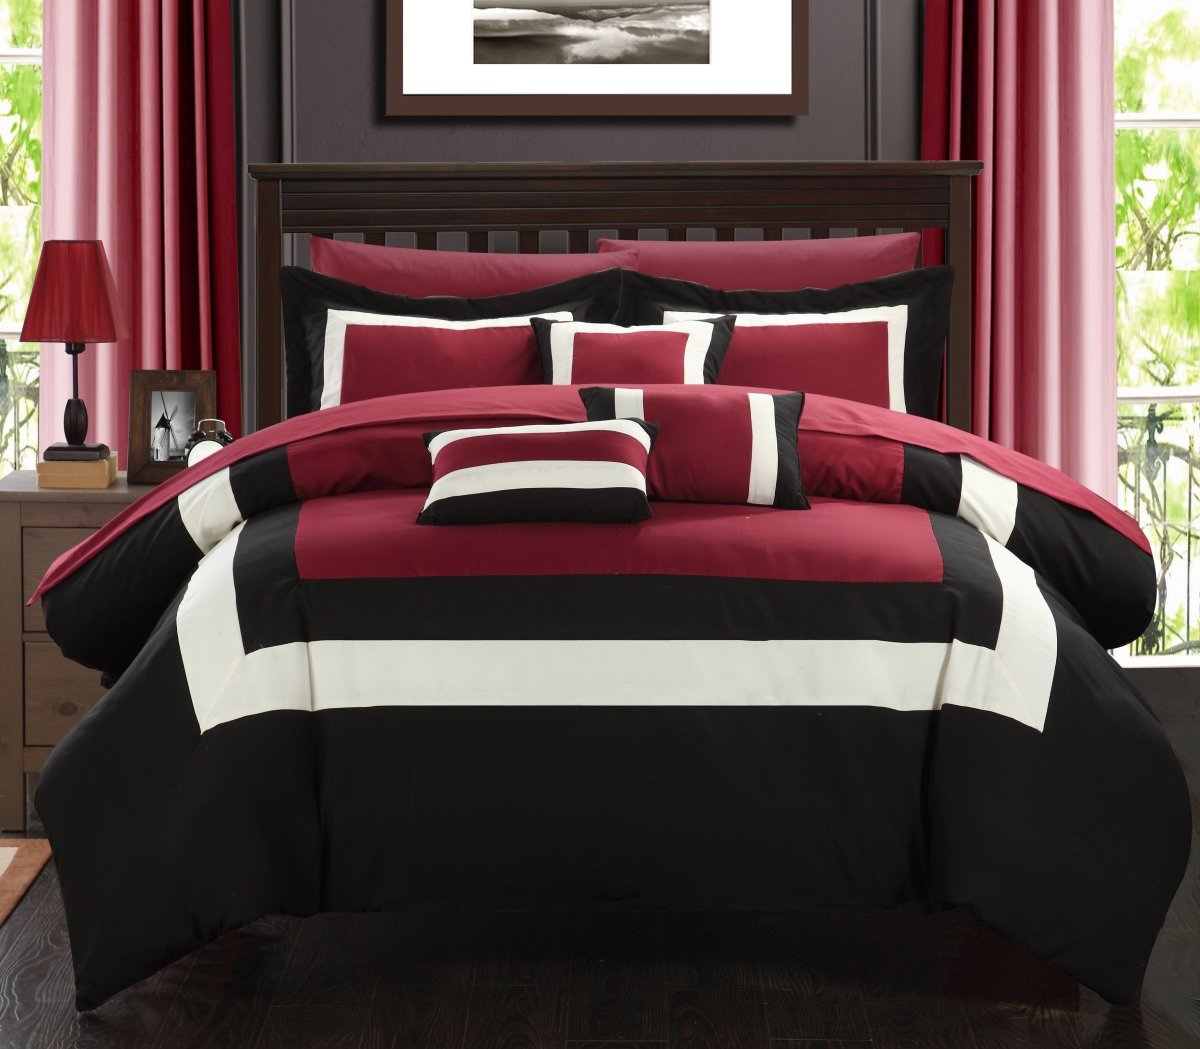 Chic Home Duke 10 Piece Comforter Set Complete Bed in a Bag Pieced Color Block Patterned Bedding with Sheet Set And Decorative Pillows Shams Included, Queen Black Red